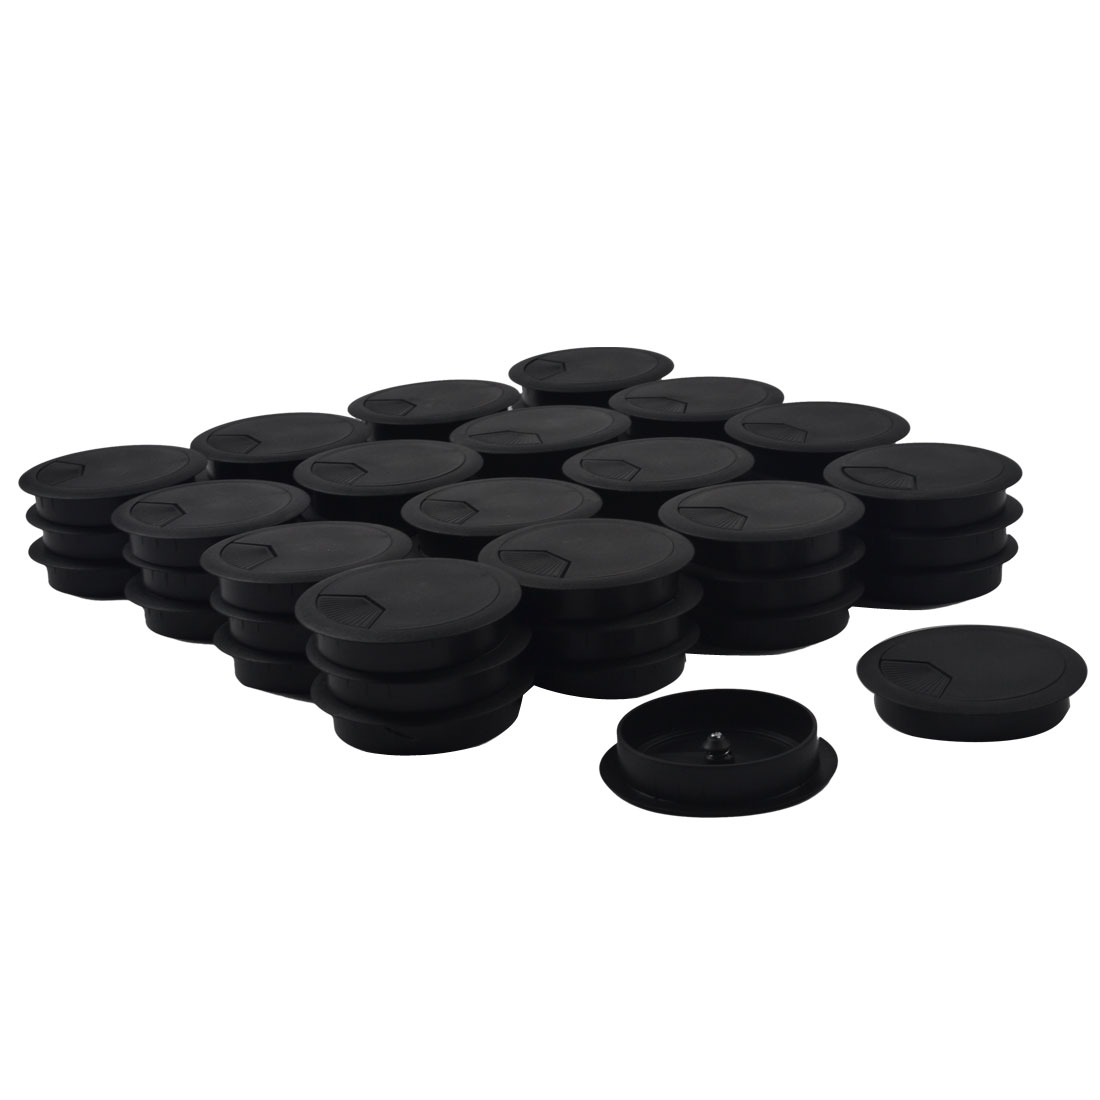 Computer Table Plastic Round Grommet Wire Cord Cable Hole Cover Black 79mm Dia 50pcs